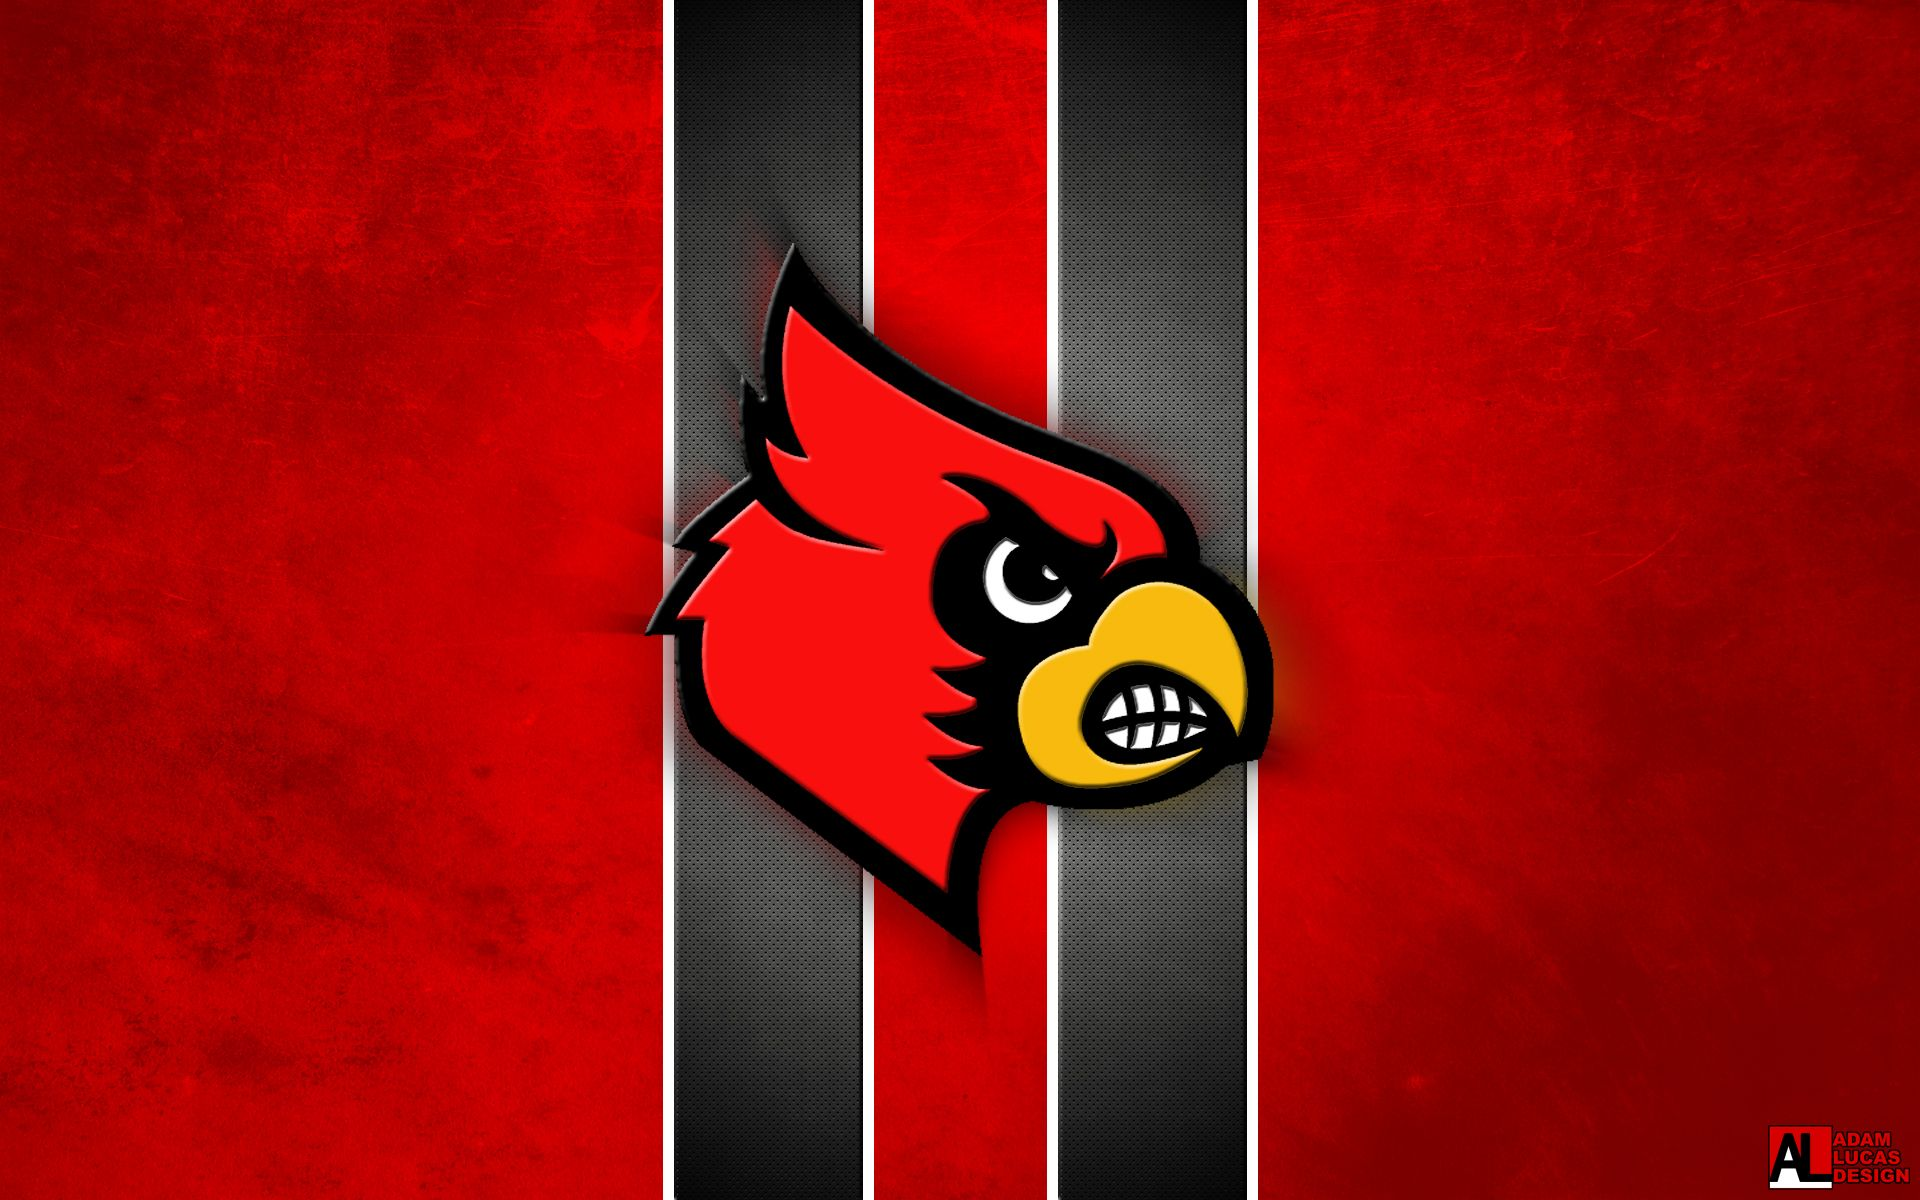 Uofl Logo Wallpaper Desktop And Mobile Cardinals Wallpaper Computer Wallpaper Football Wallpaper